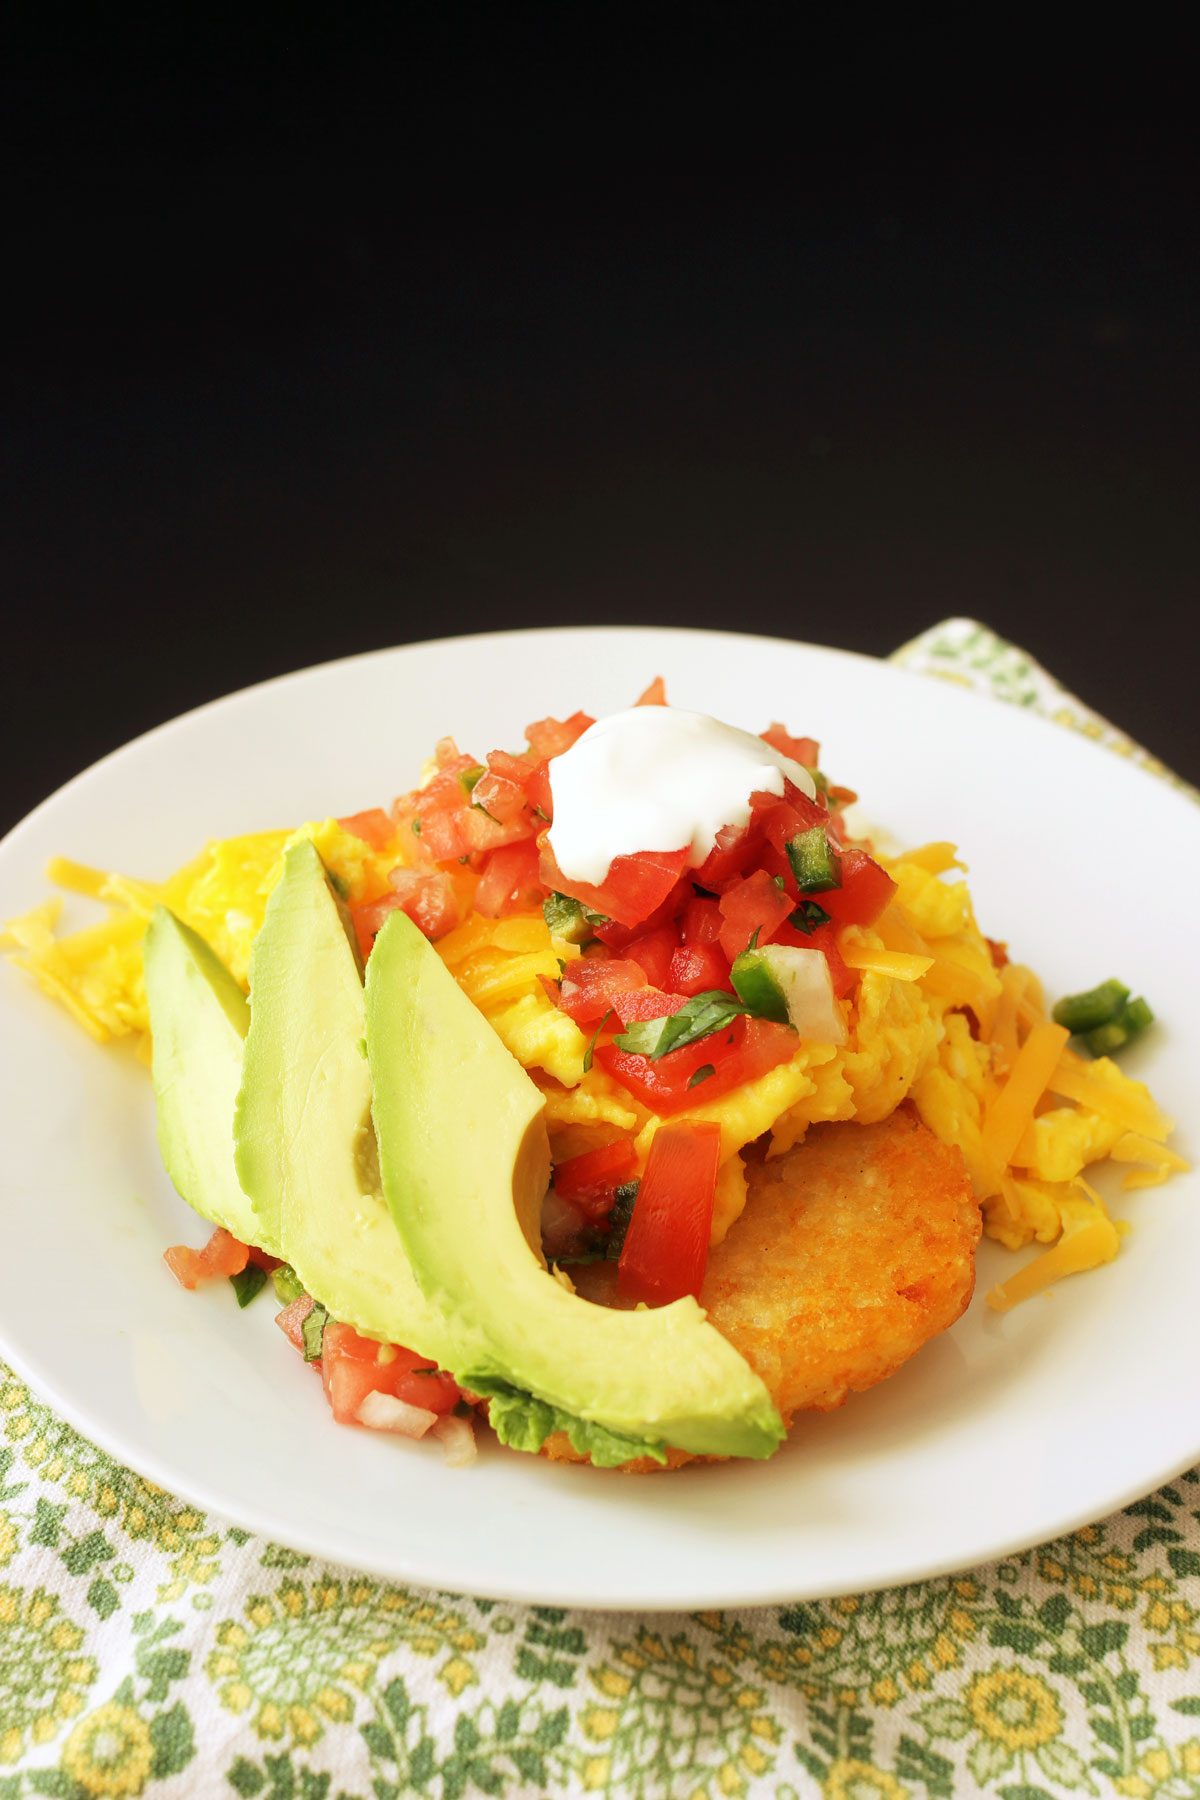 hash brown stacks with avocado slices fanned out